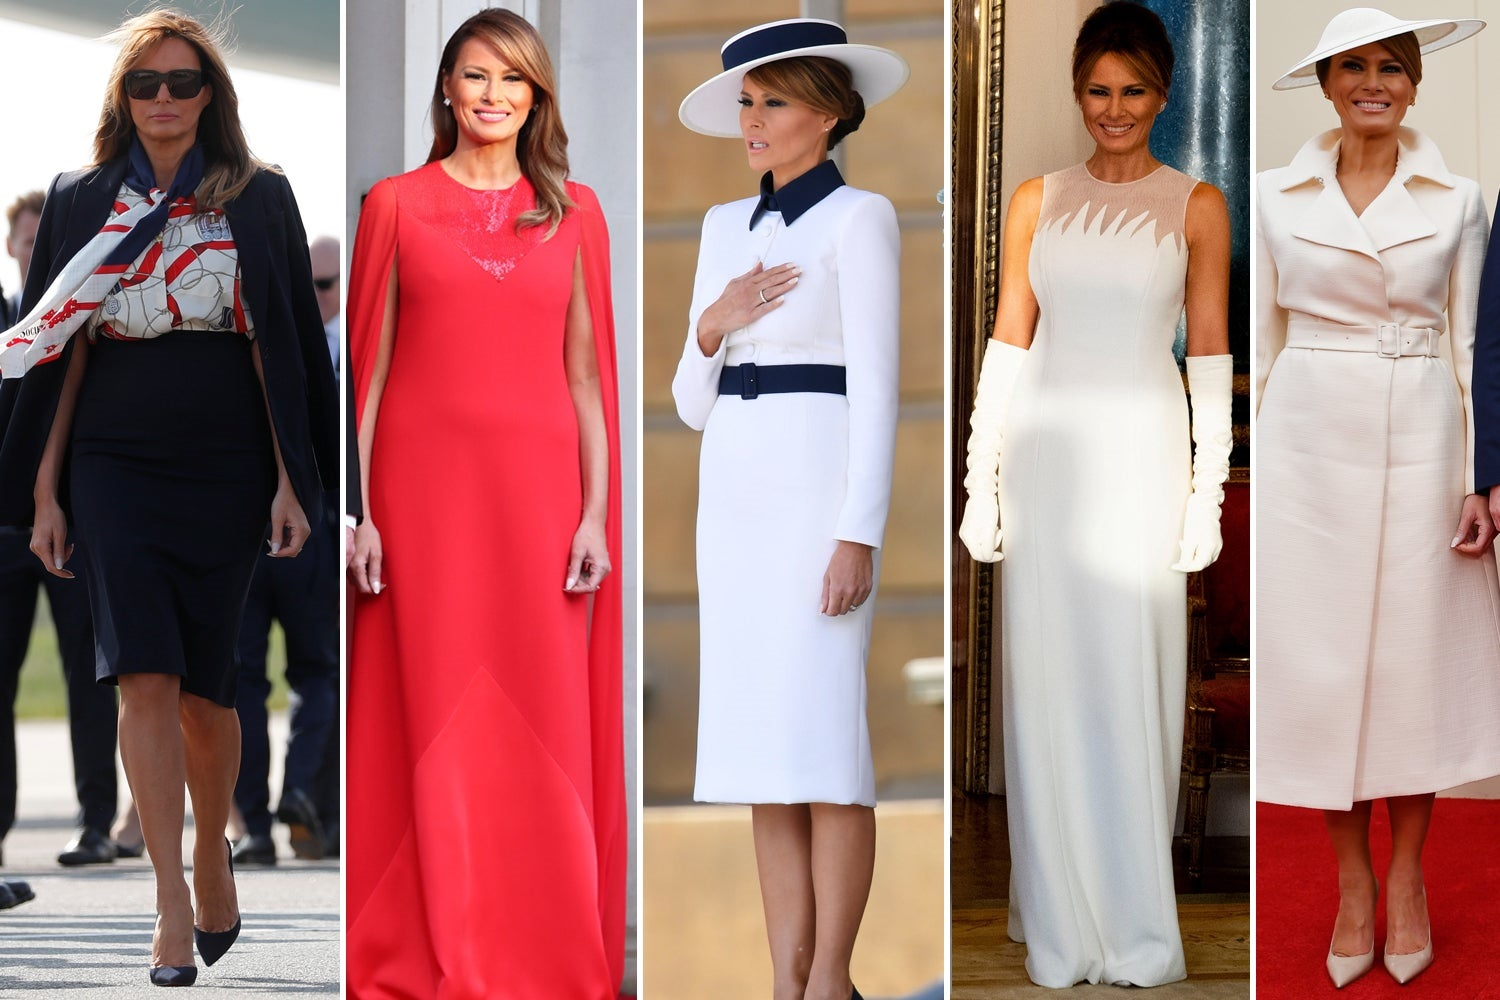 20190727 dress pr0n melania.jpg